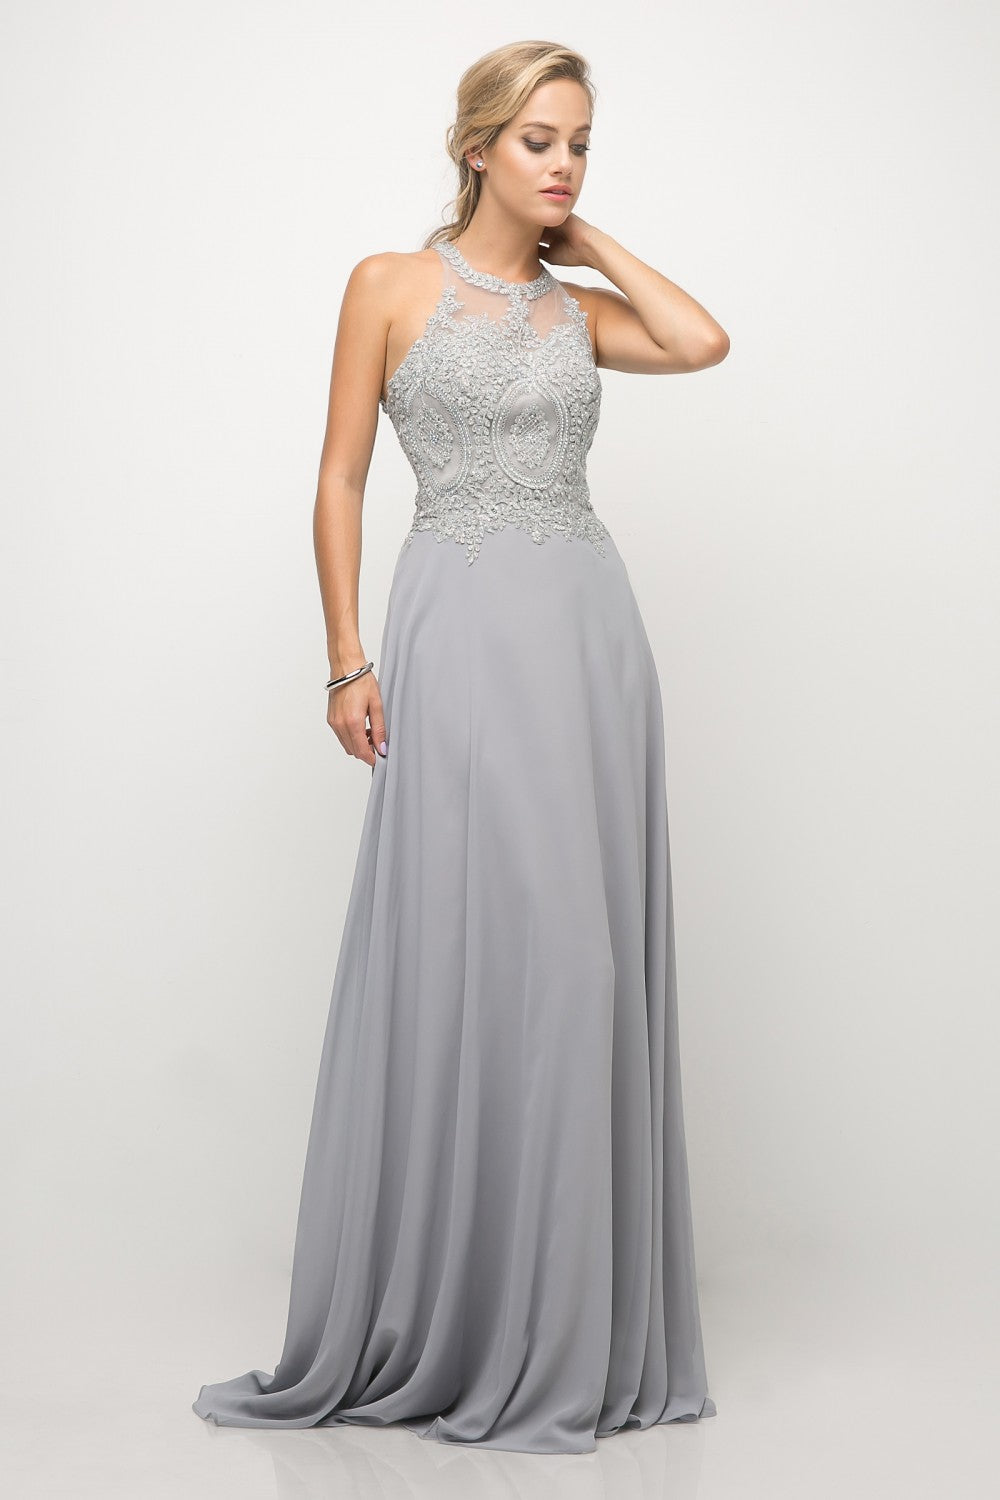 Bette Gown Halter Neckline with Beaded Lace C120NX-Silver SAMPLE IN STORE